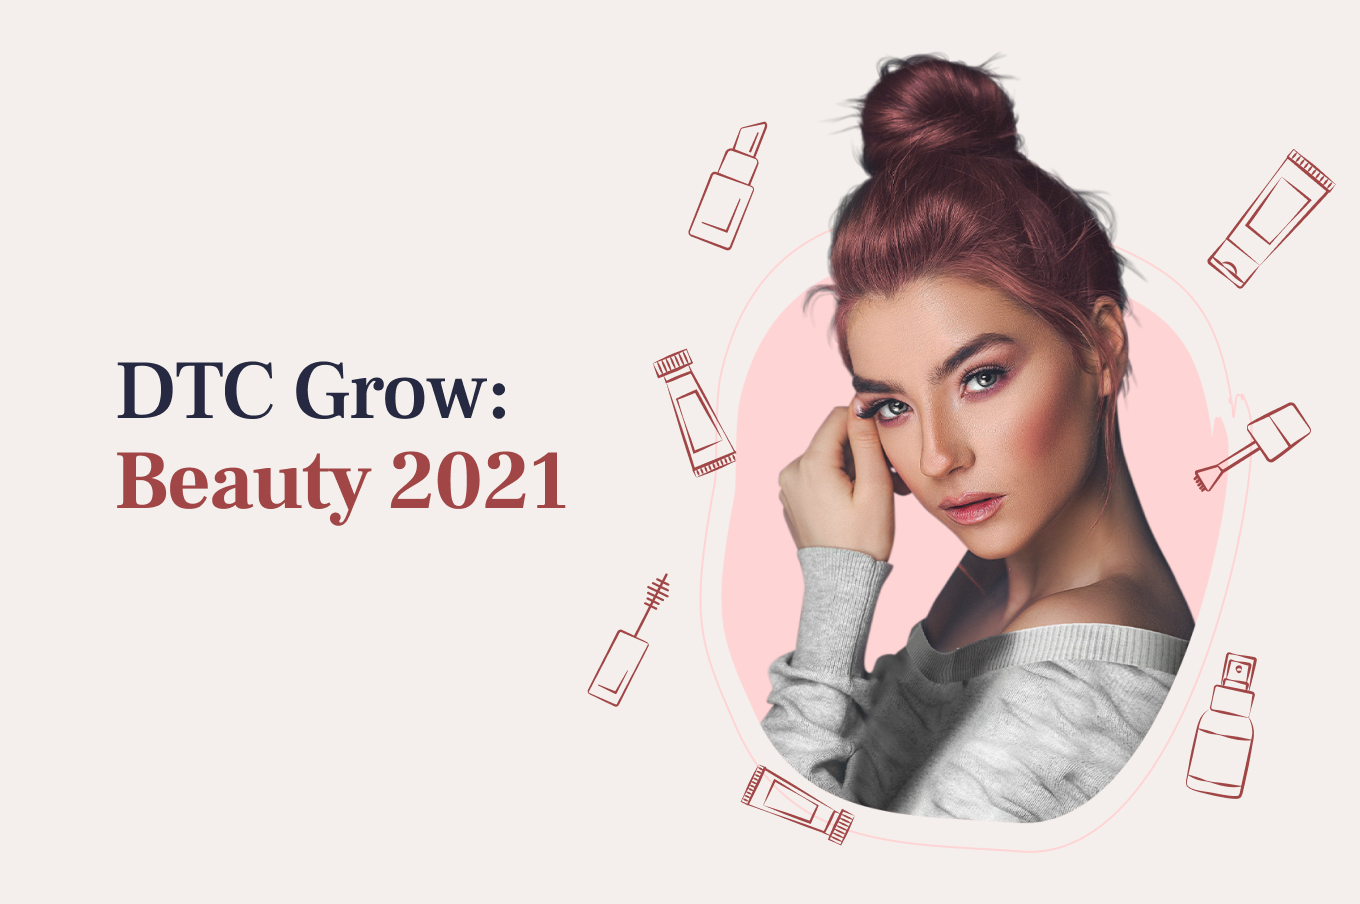 DTC Grow event title with smiling woman and beauty products floating